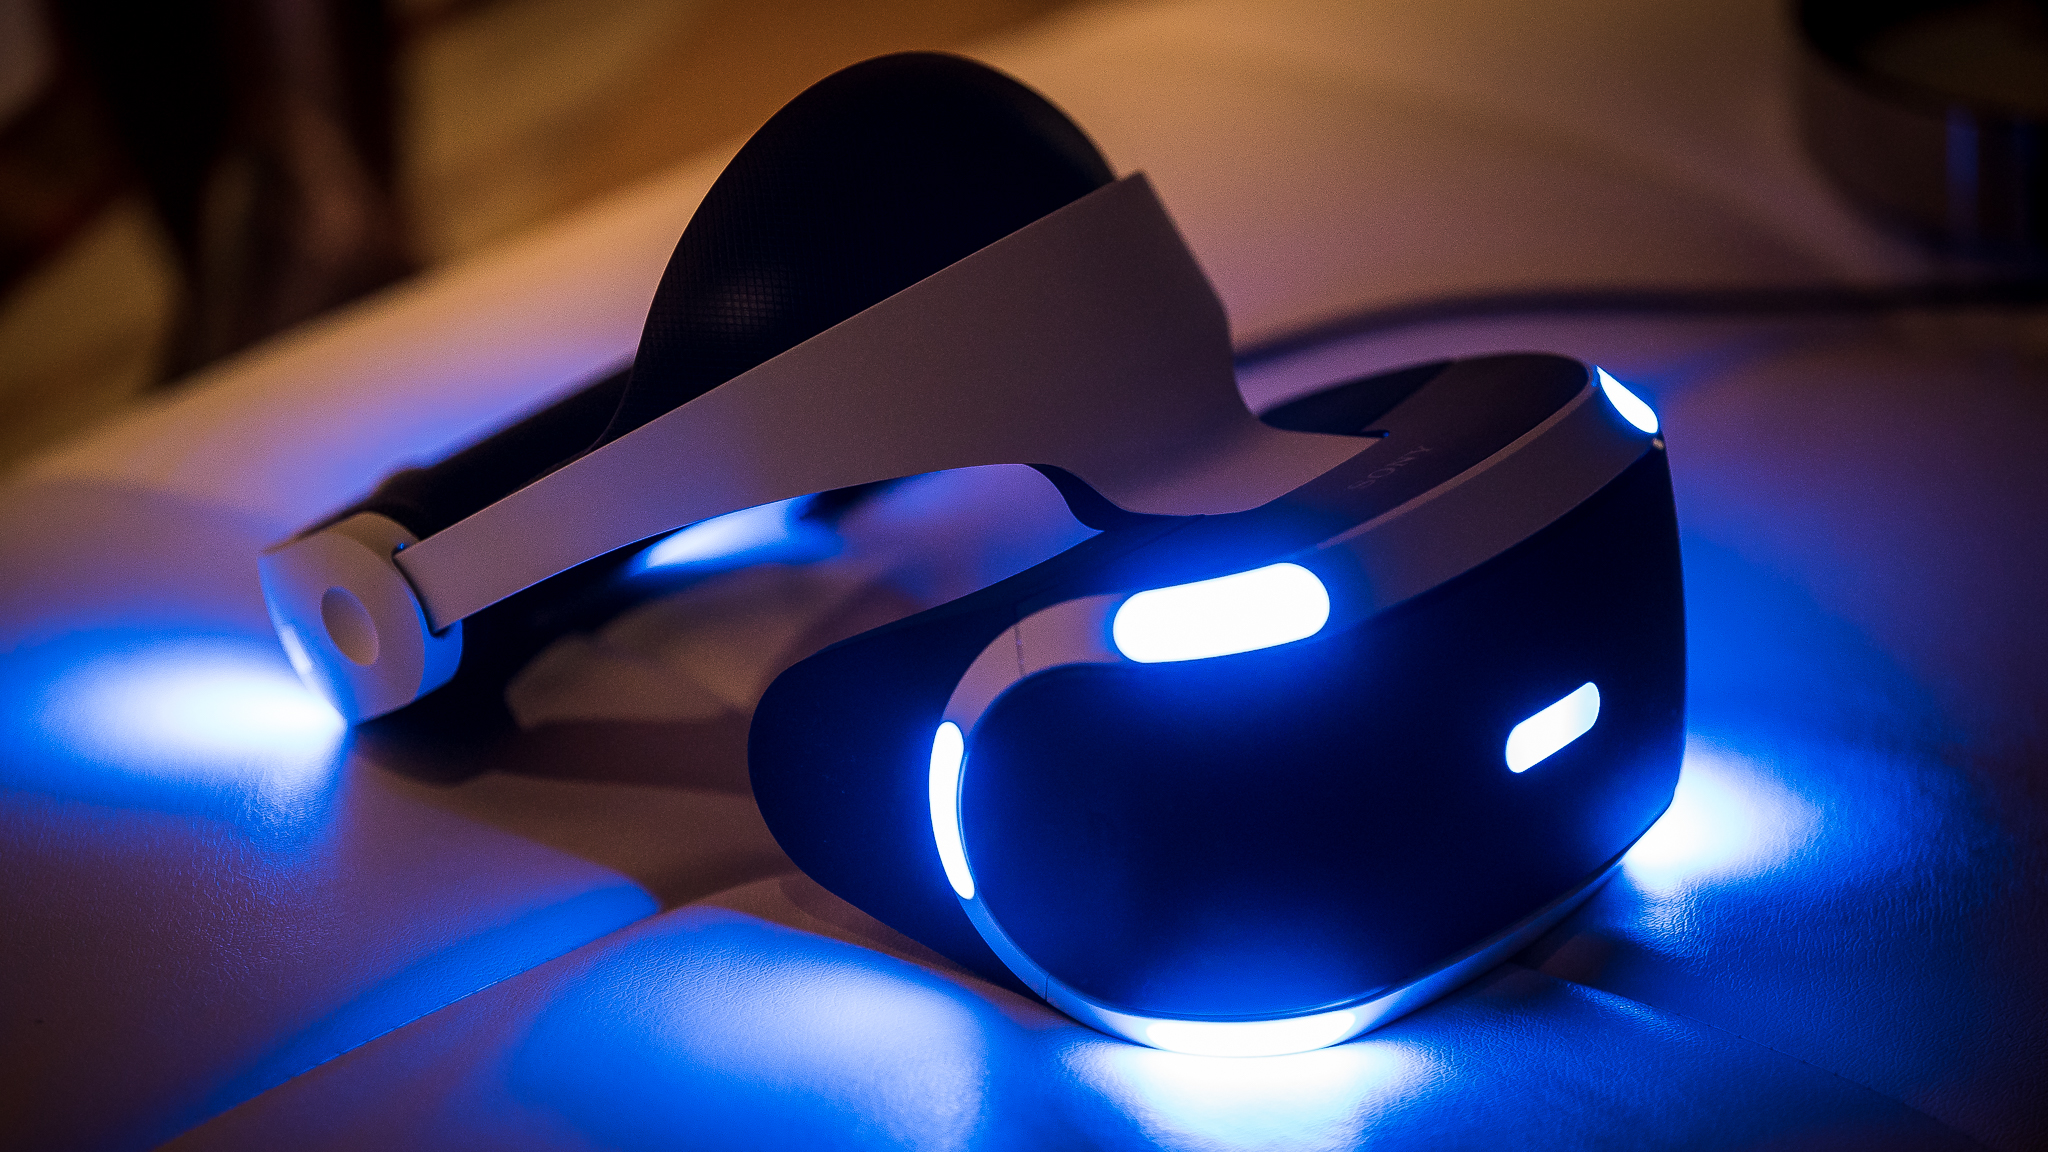 Sony's PSVR will work with both the original PS4 and the NEO model.